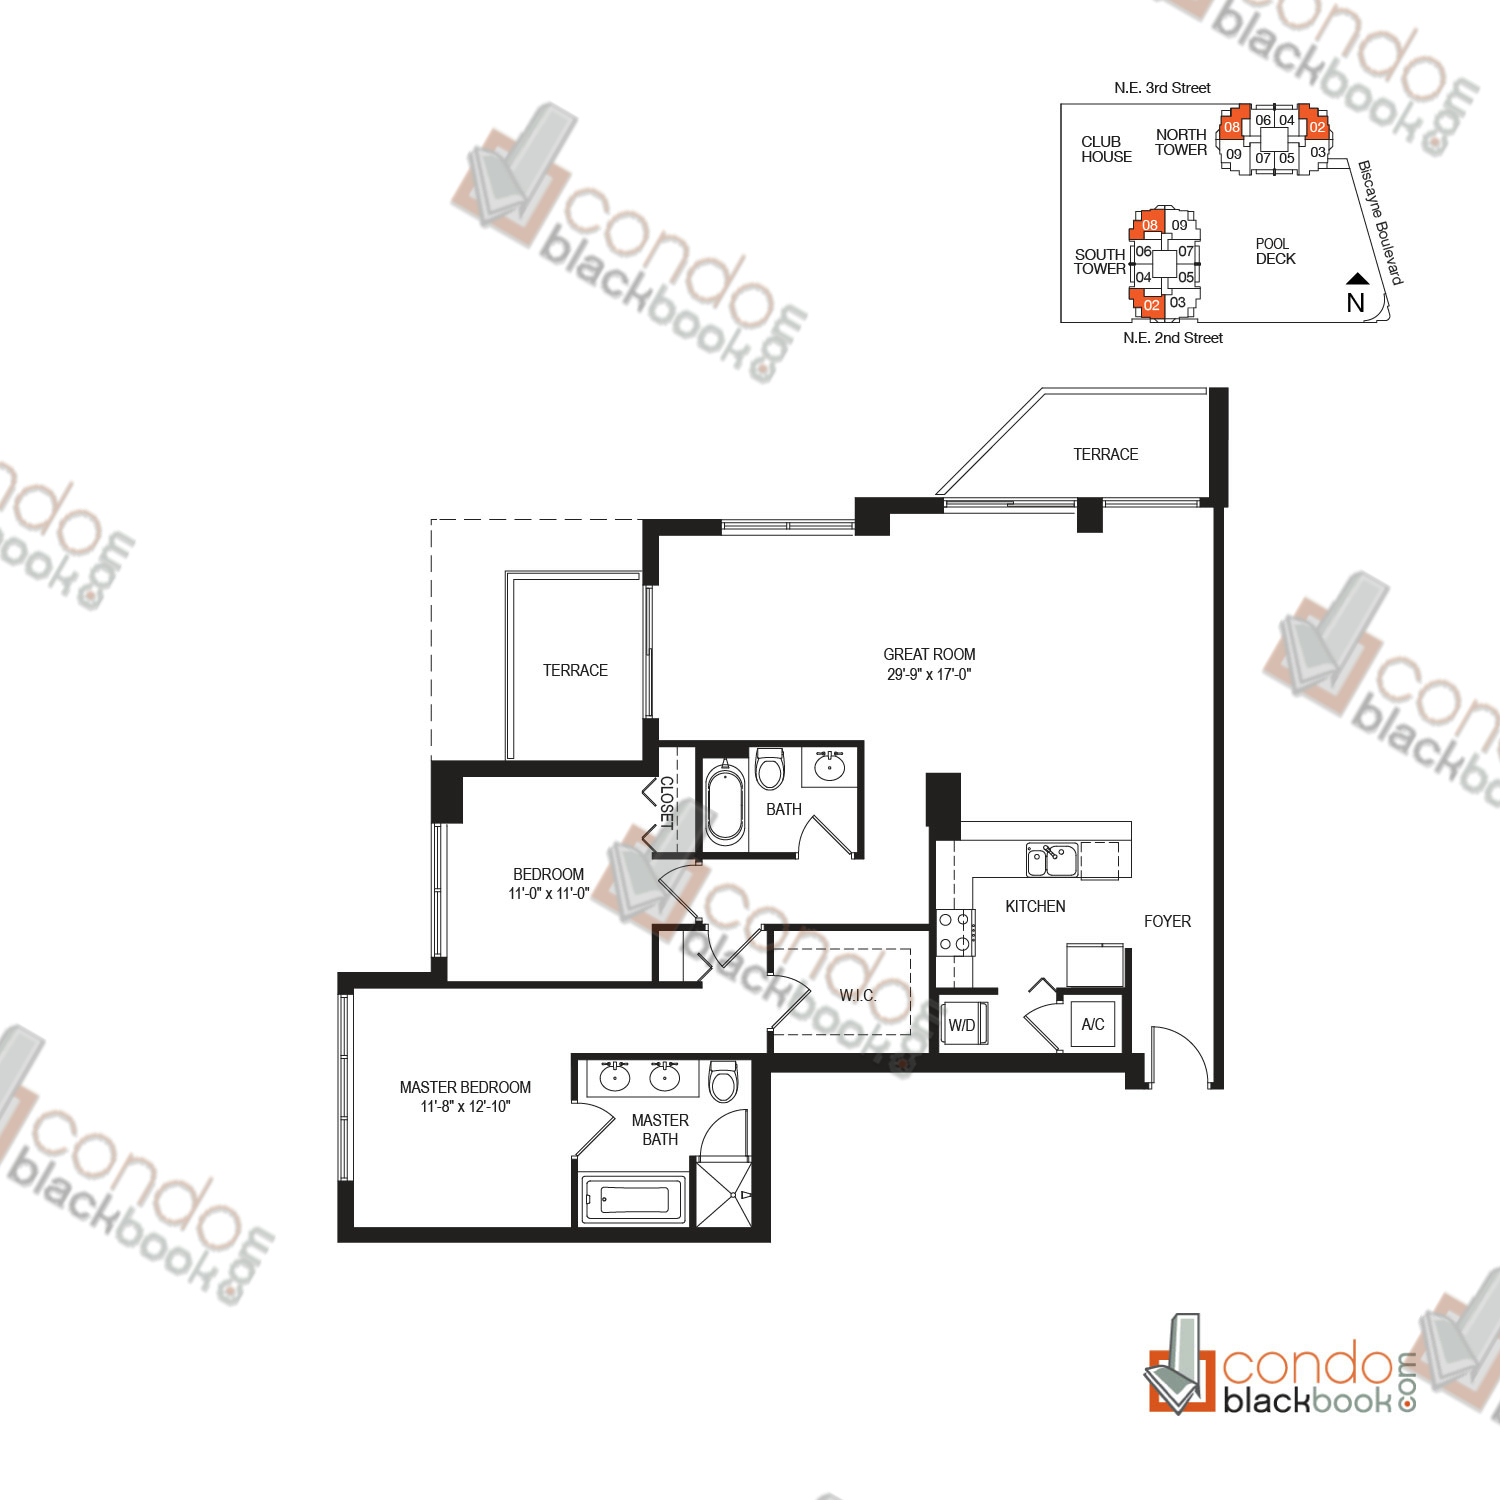 Floor plan for Vizcayne Downtown Miami Miami, model RESIDENCE 5, line 02, 08, 2/2 bedrooms, 1,357 sq ft